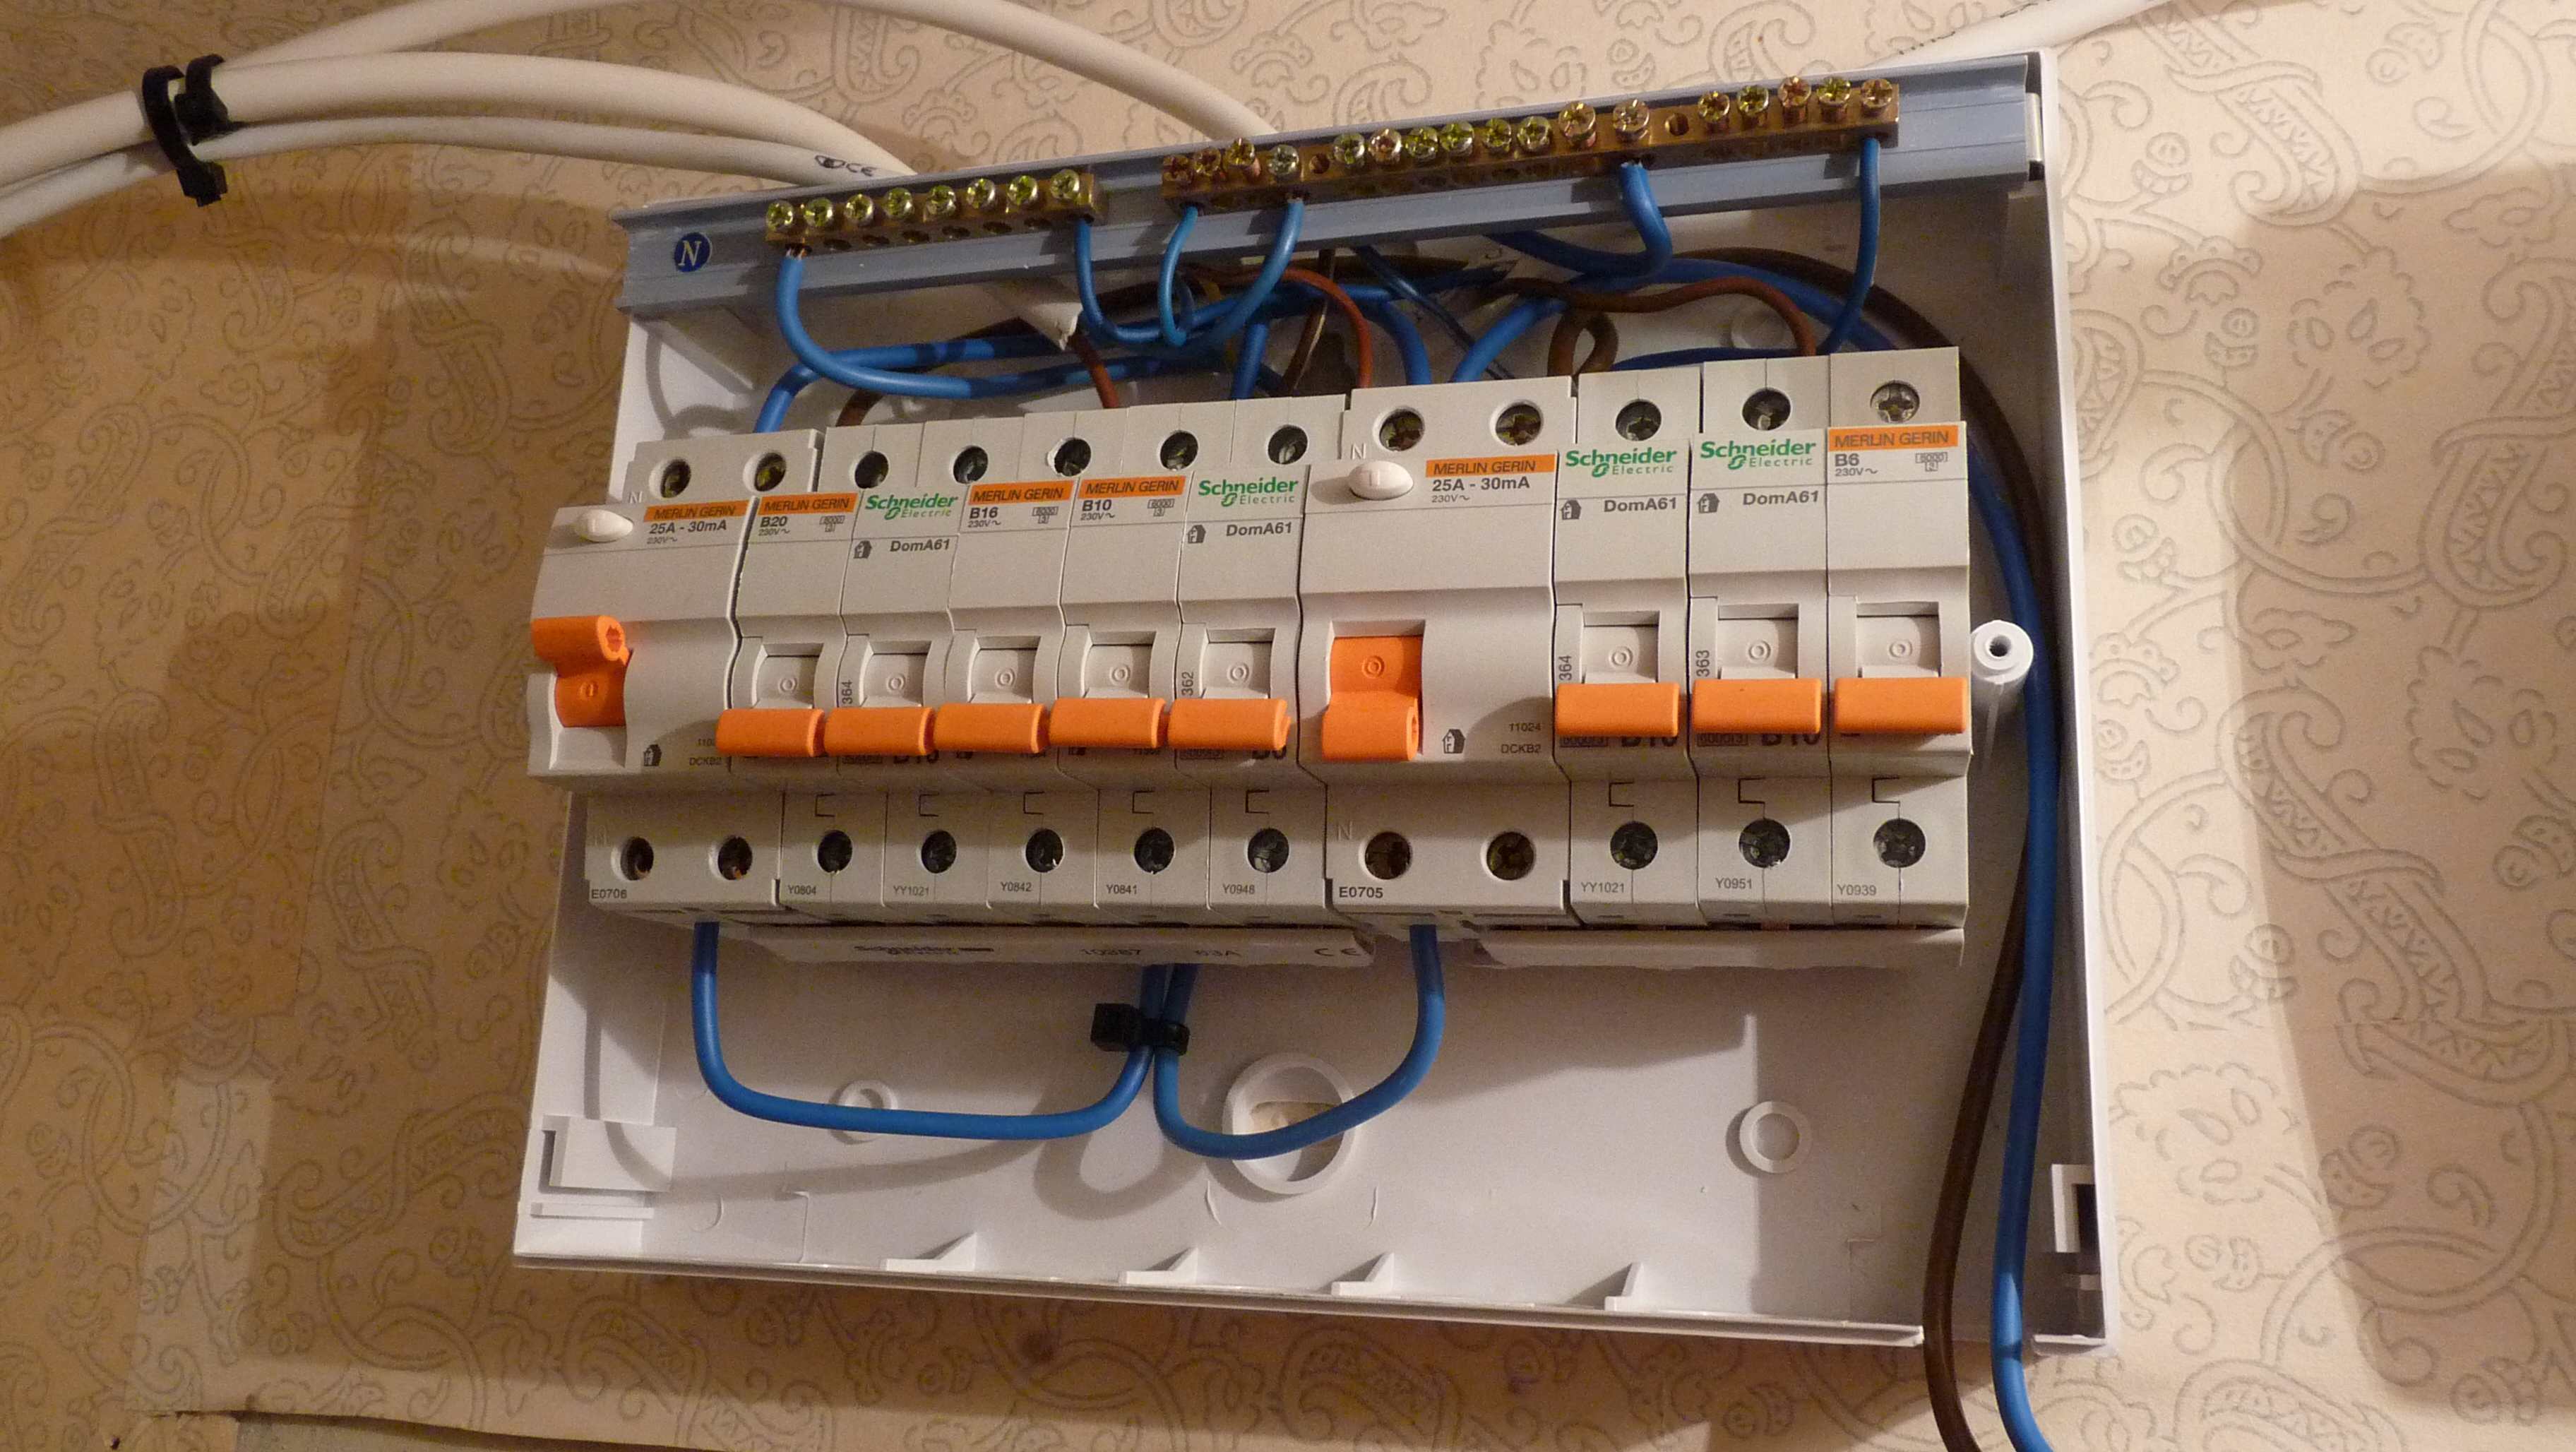 House Fuse Box Single Starting Know About Wiring Diagram Phone Wire Junction File Of European Wikimedia Commons Rh Org